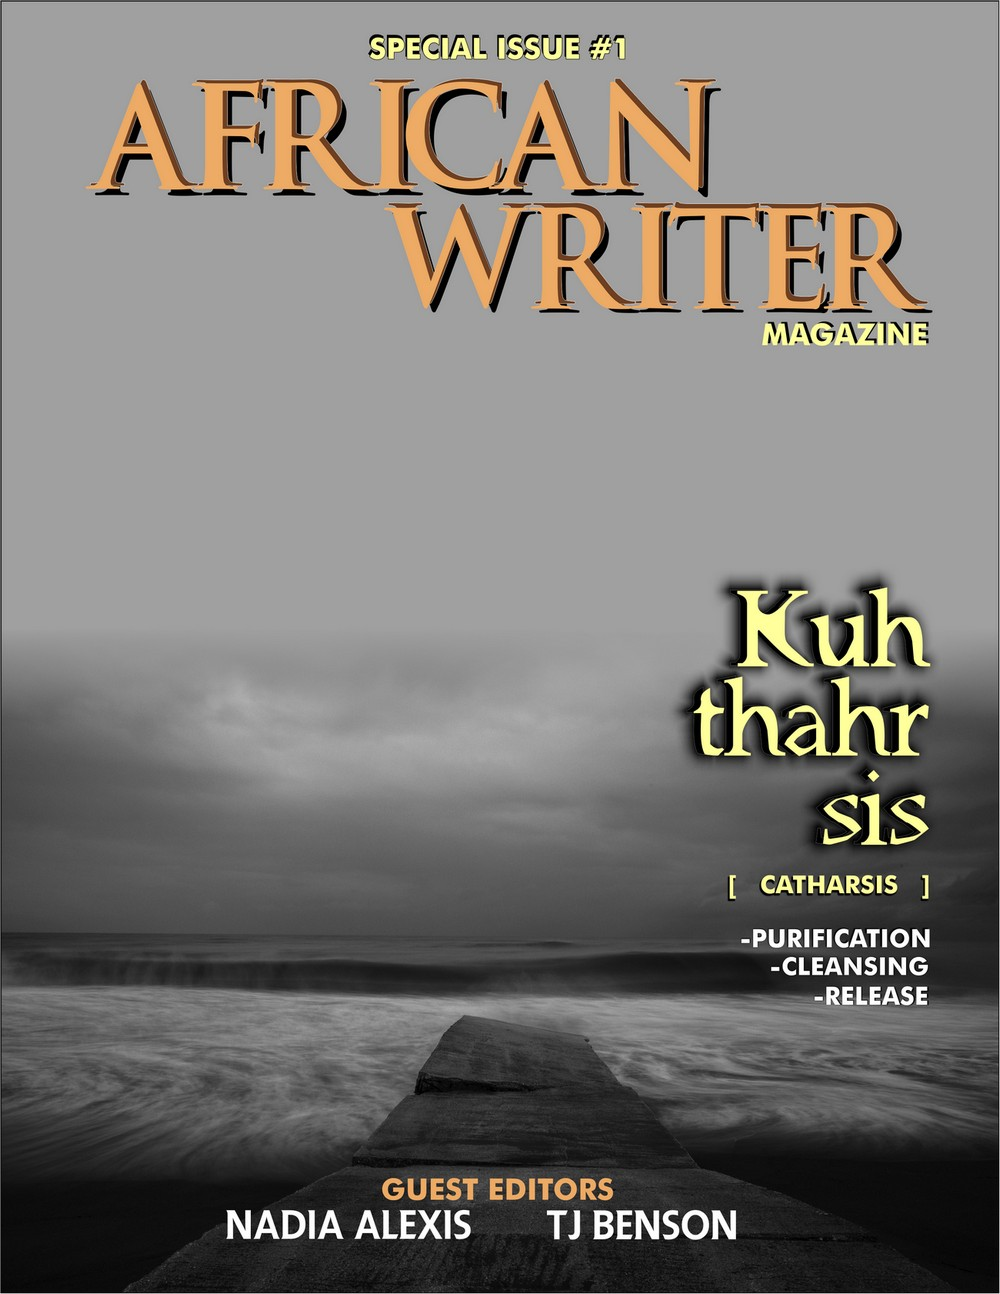 African Writer Magazine Special Issue 1